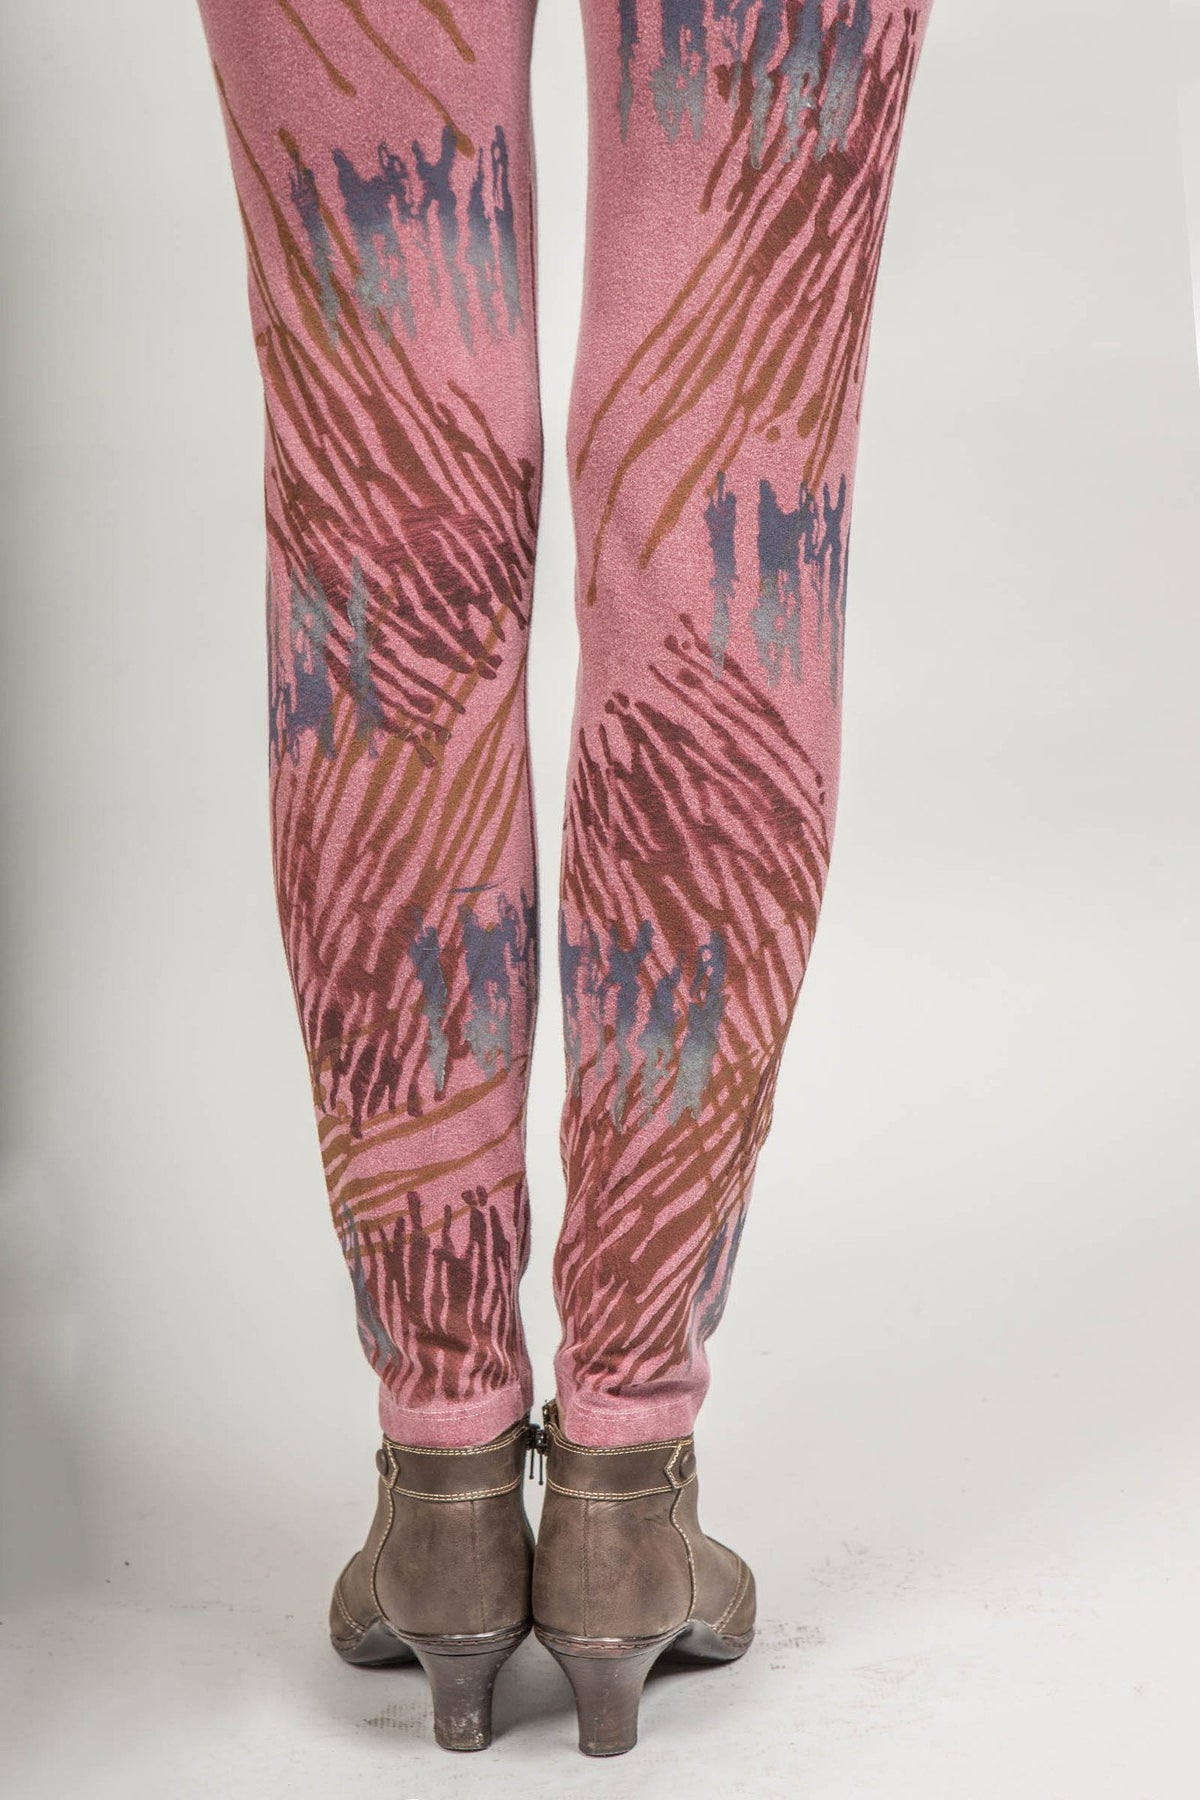 Antique Red Distressed BF Legging Printed WAS $148 NOW $98